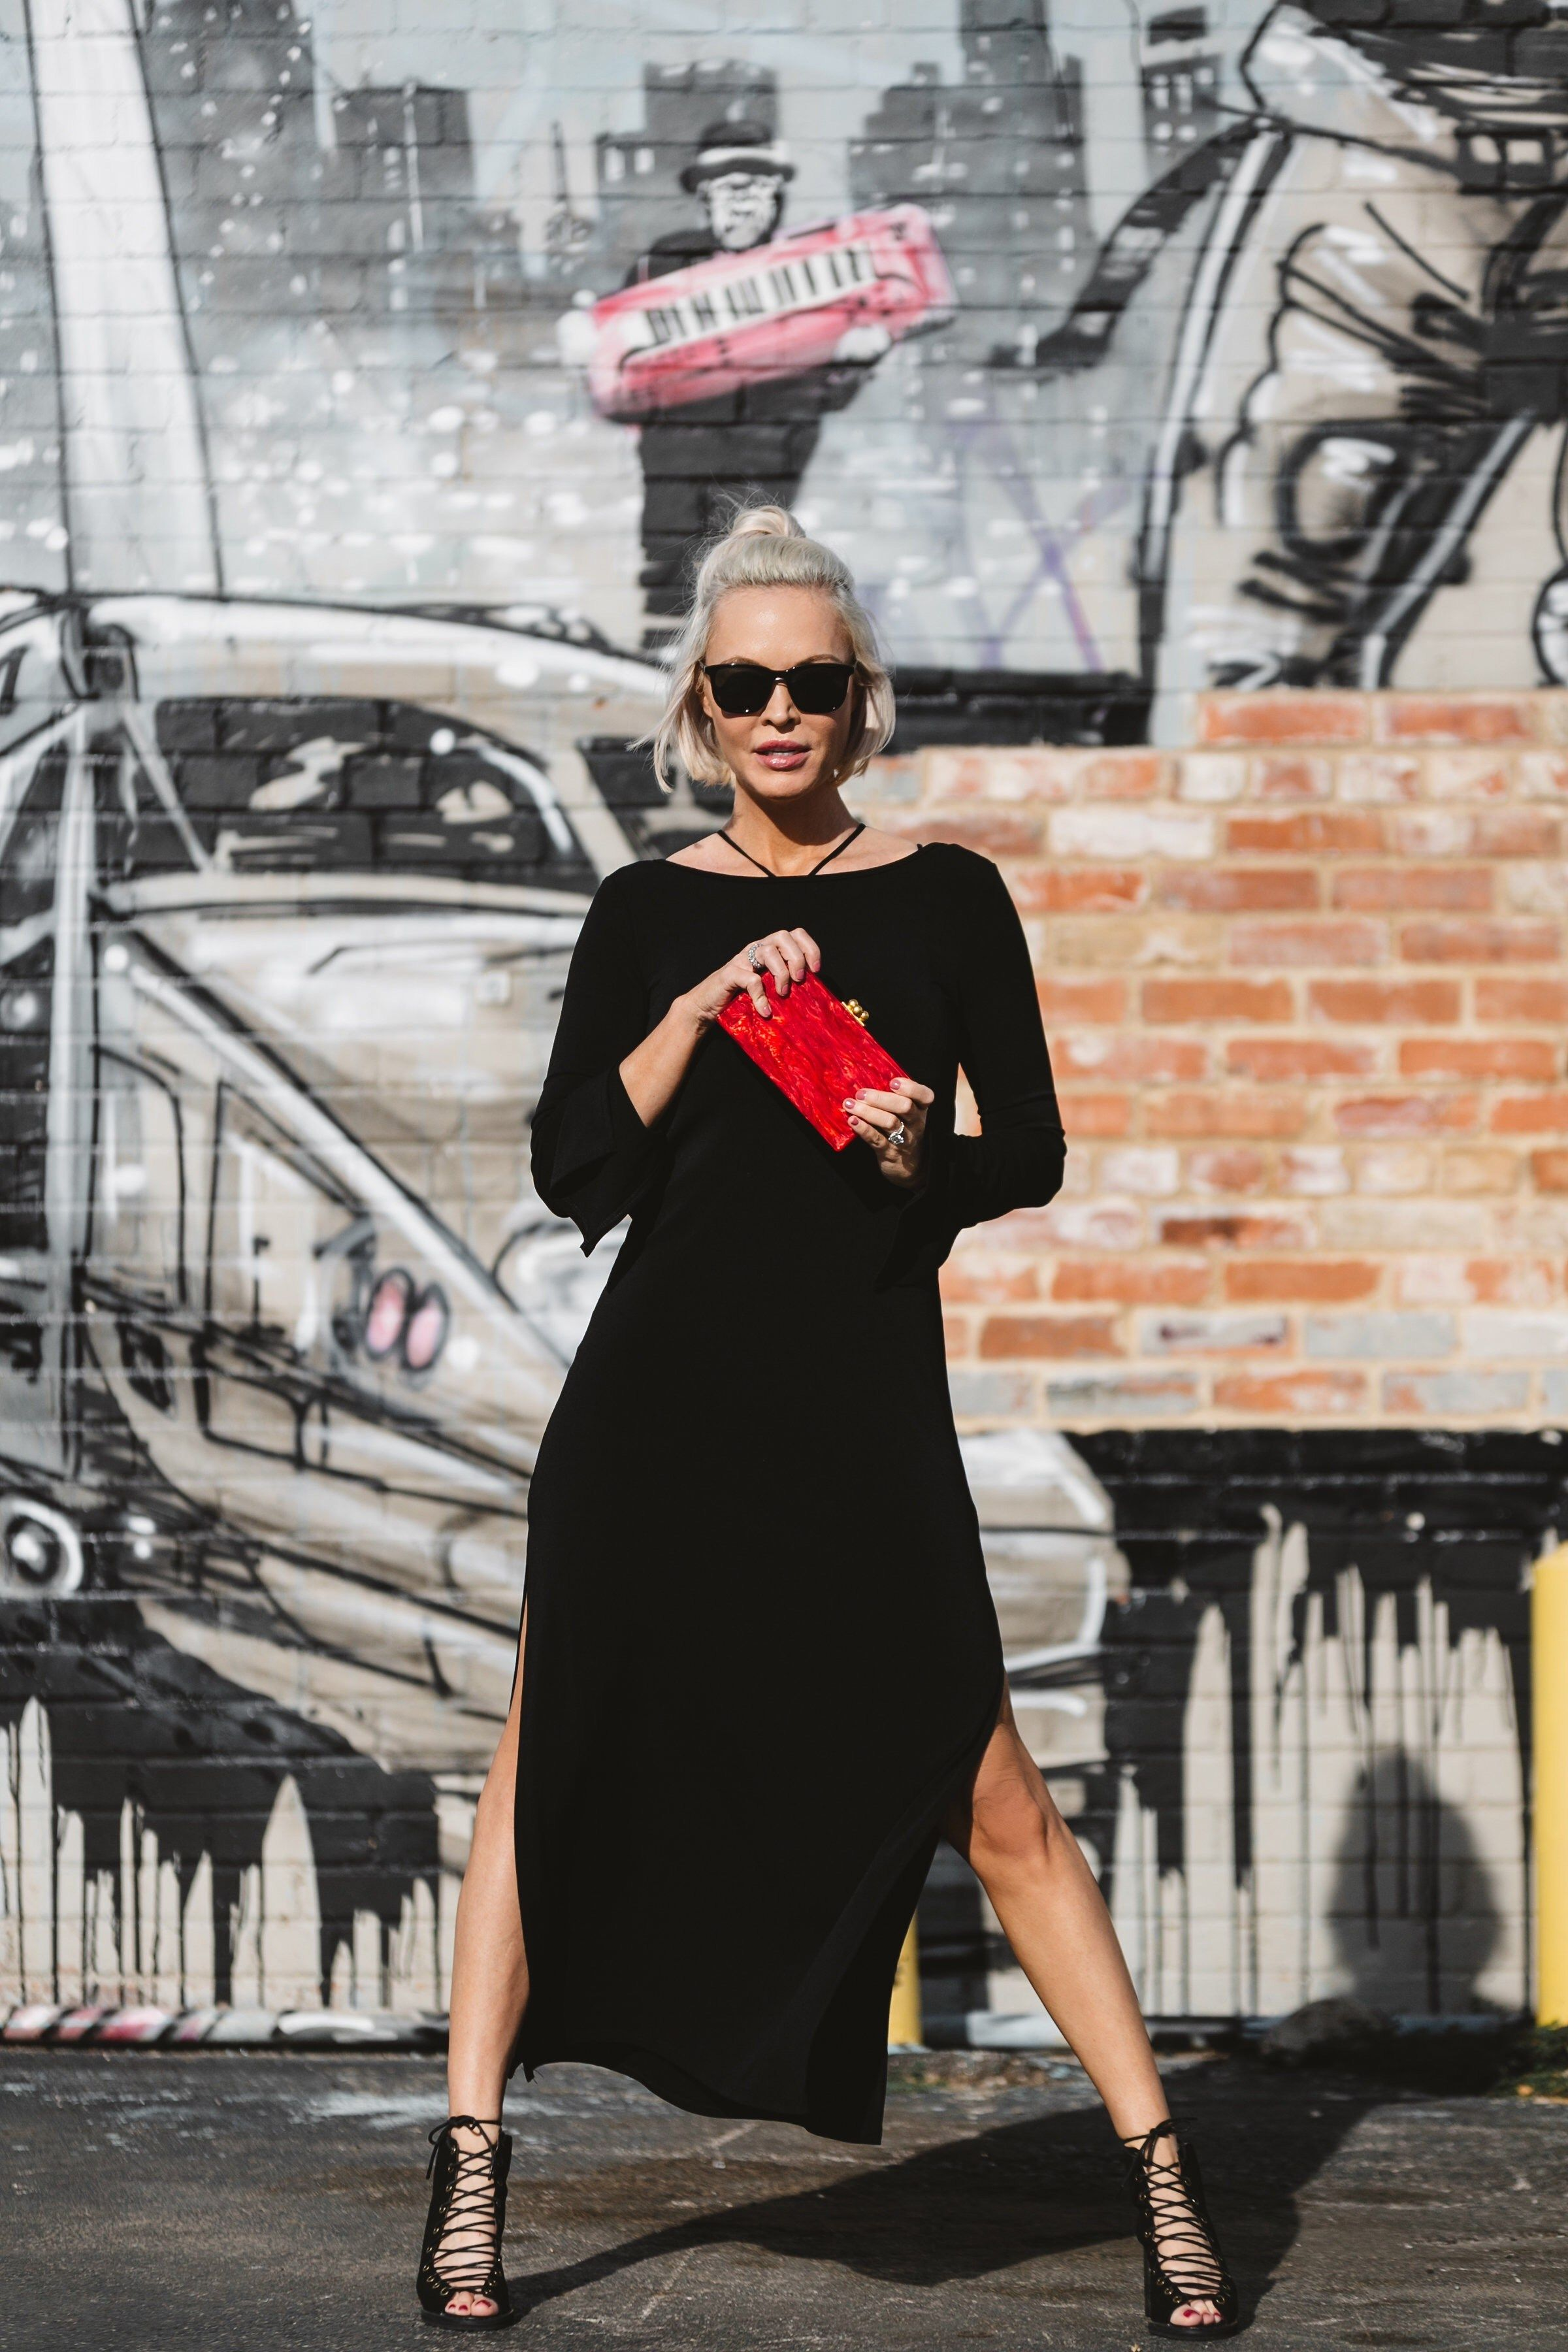 Little Black Dress 2 0 Styling Your Lbd With Red Accessories Little Black Dress Style Red Accessories [ 3600 x 2400 Pixel ]